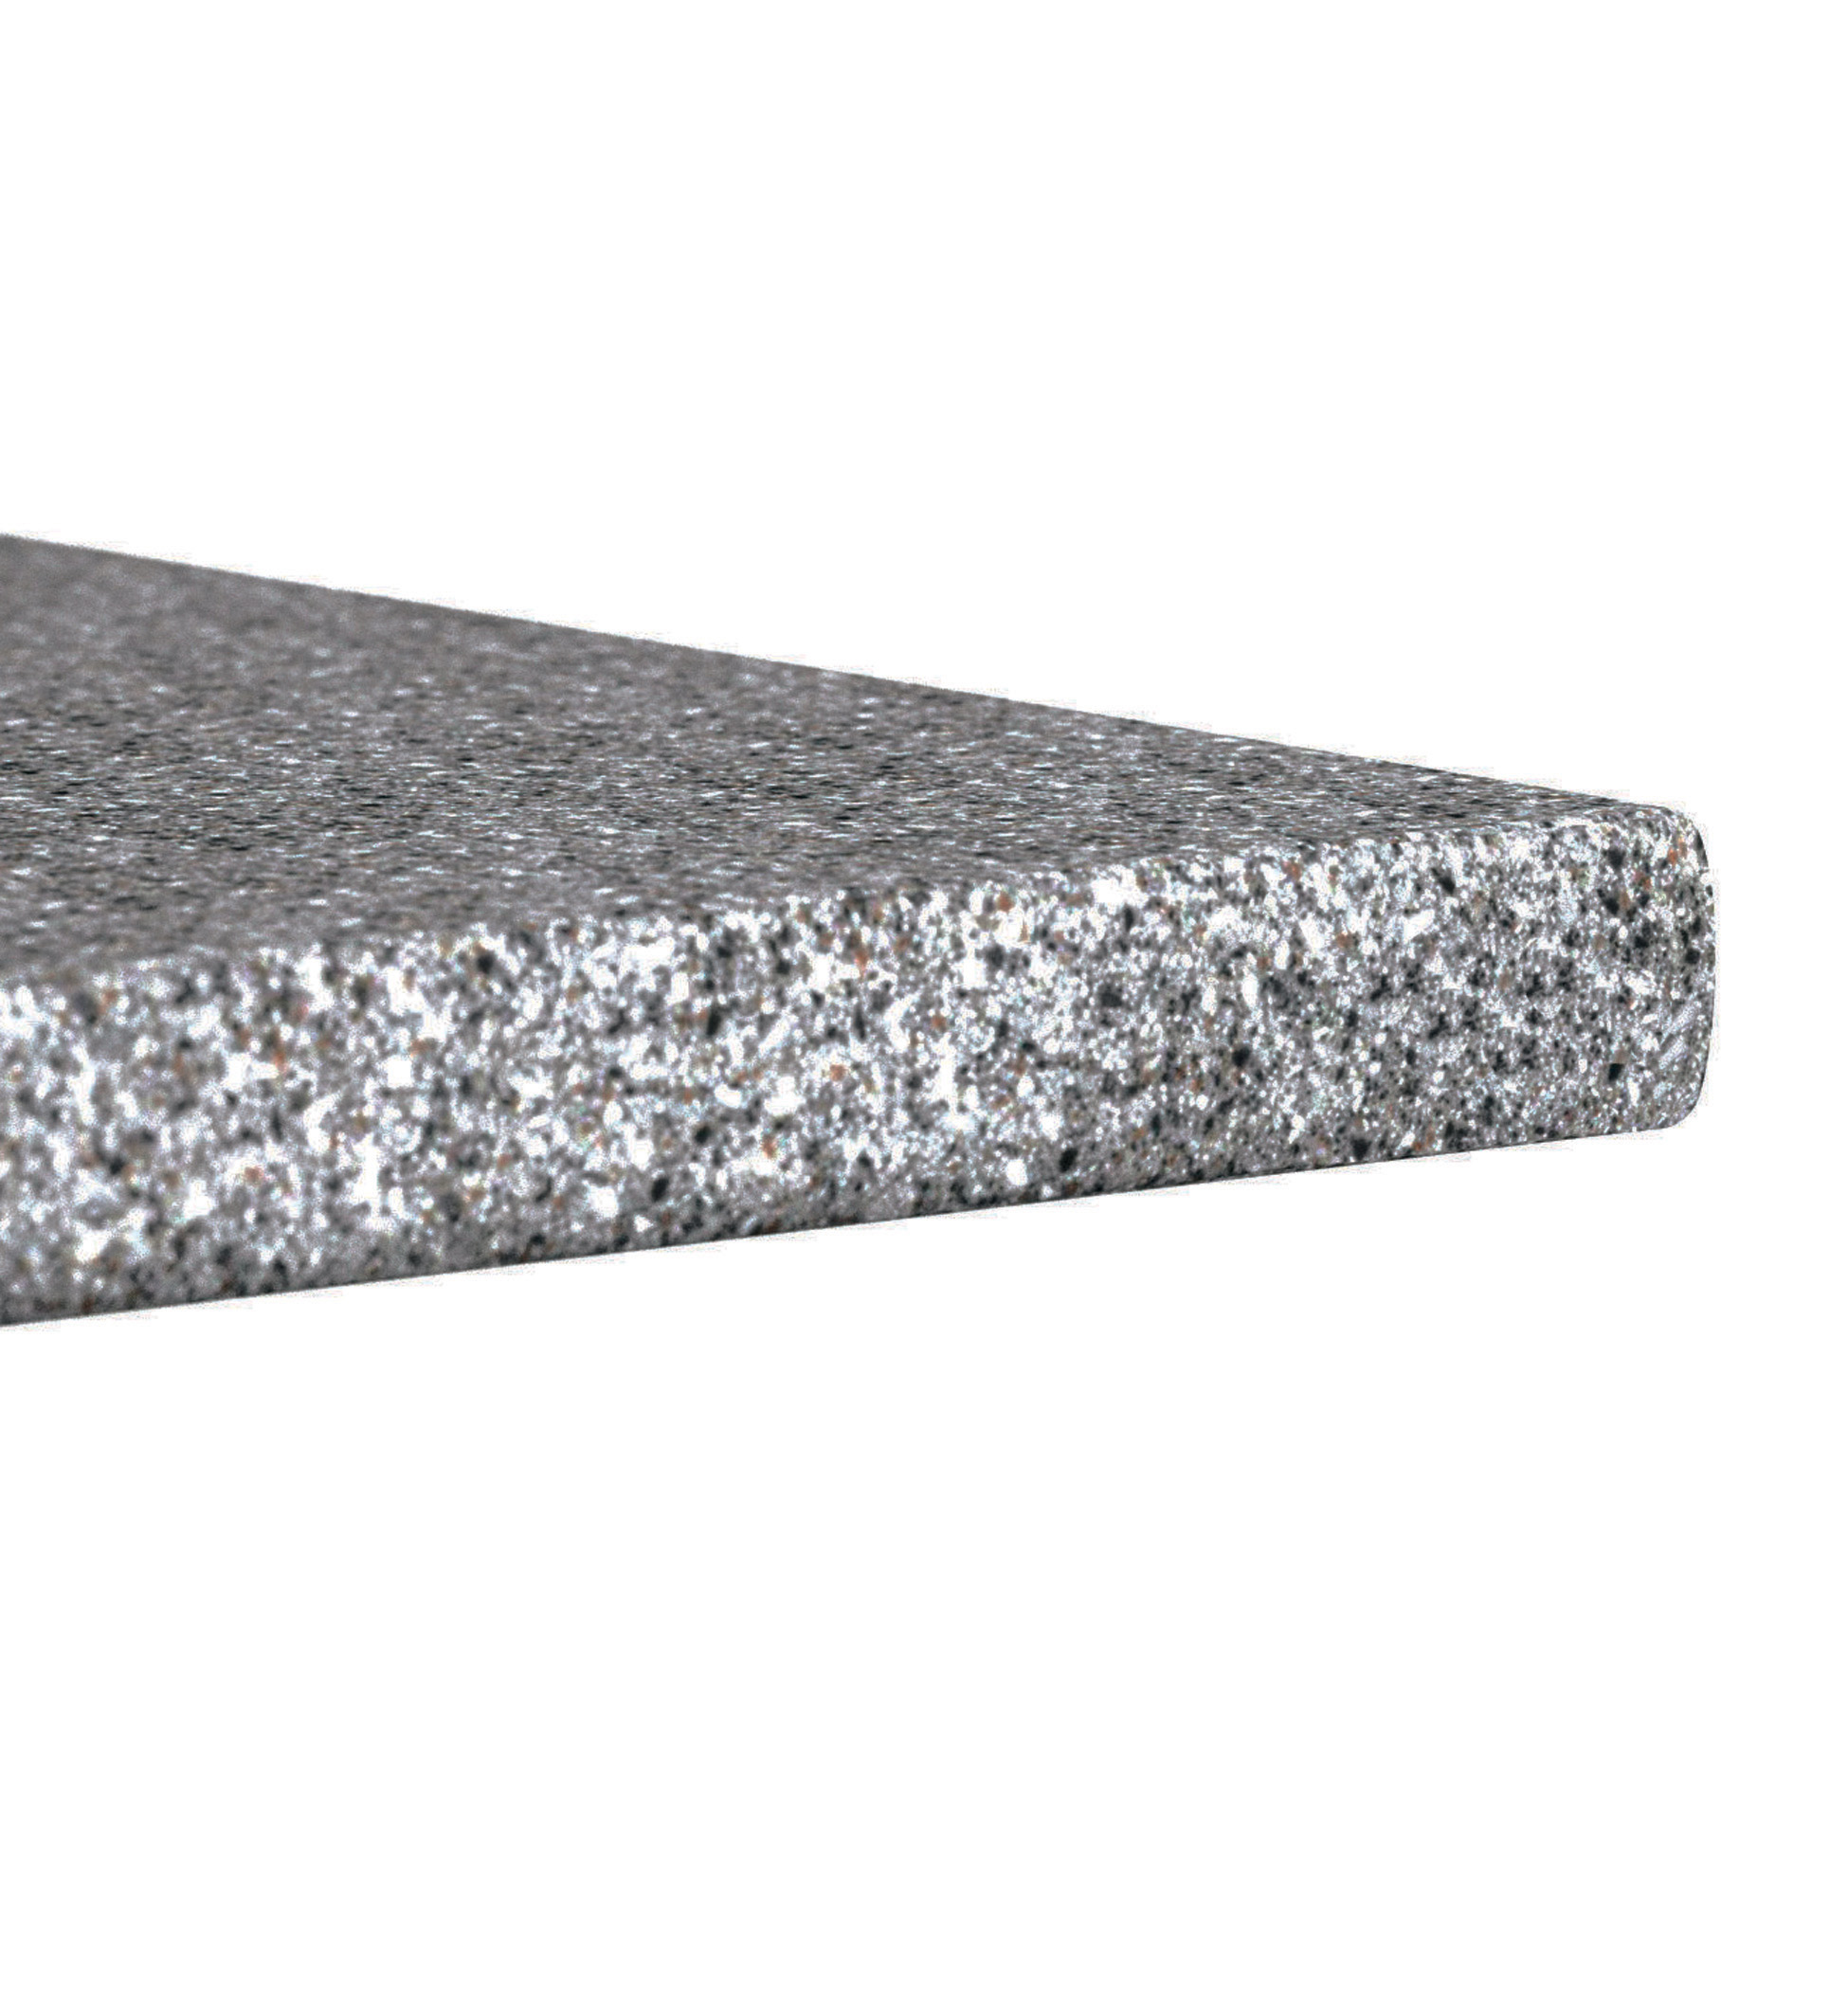 40311 Solid Surface Top. SHARE. LOW RES HI RES FAVORITES PRINT